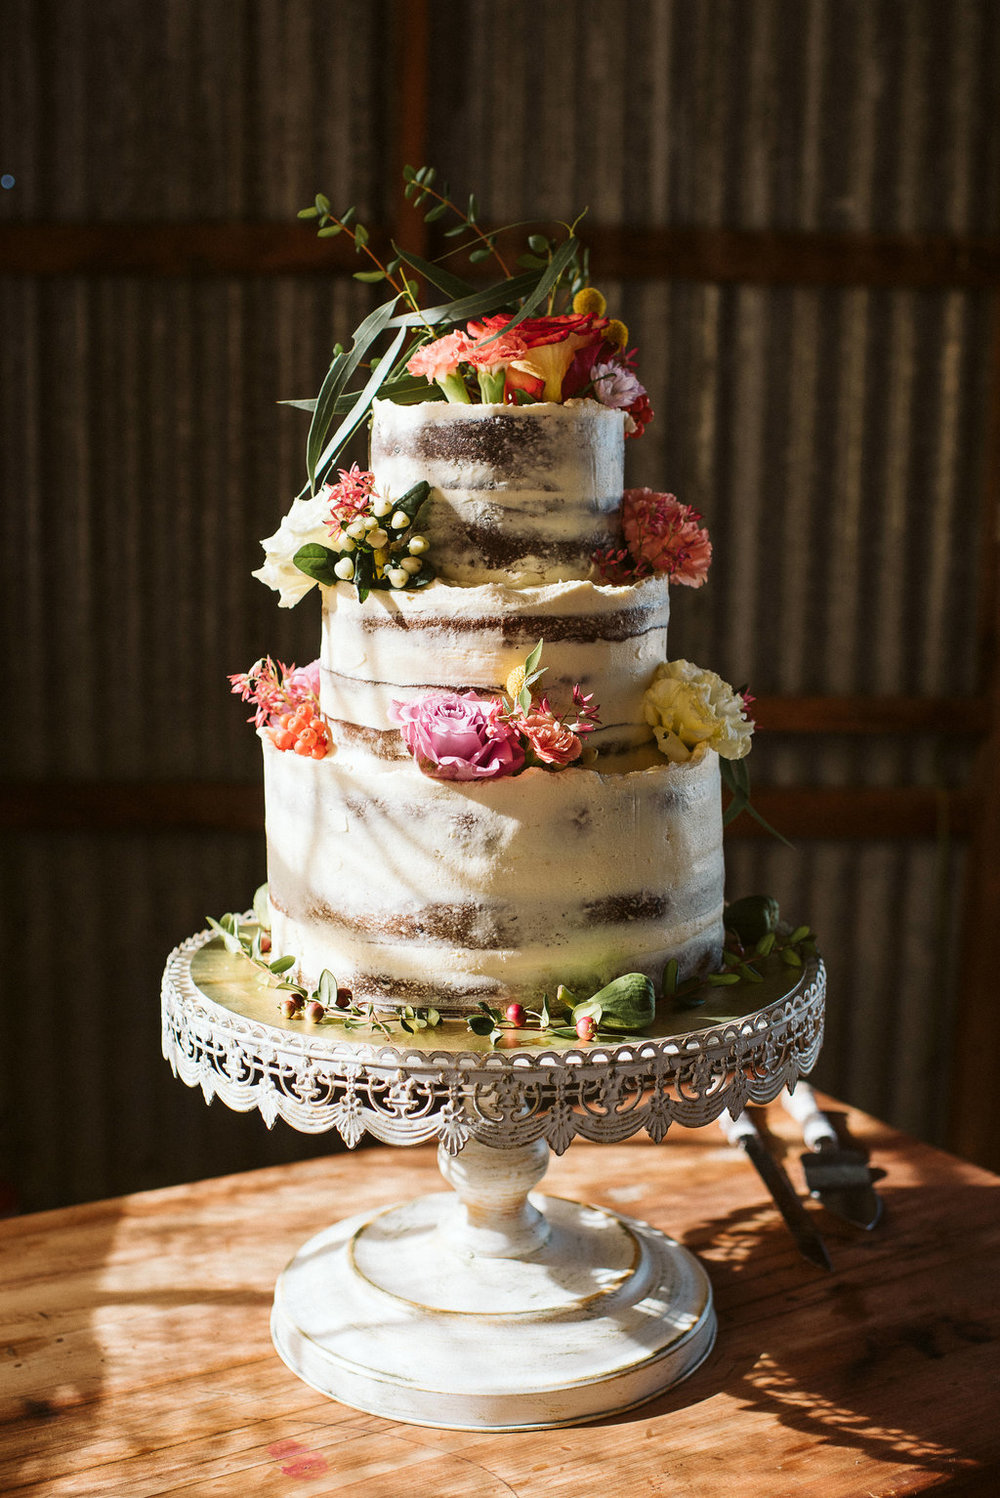 Peppermint Kitchen semi-naked Wanaka Wedding cake